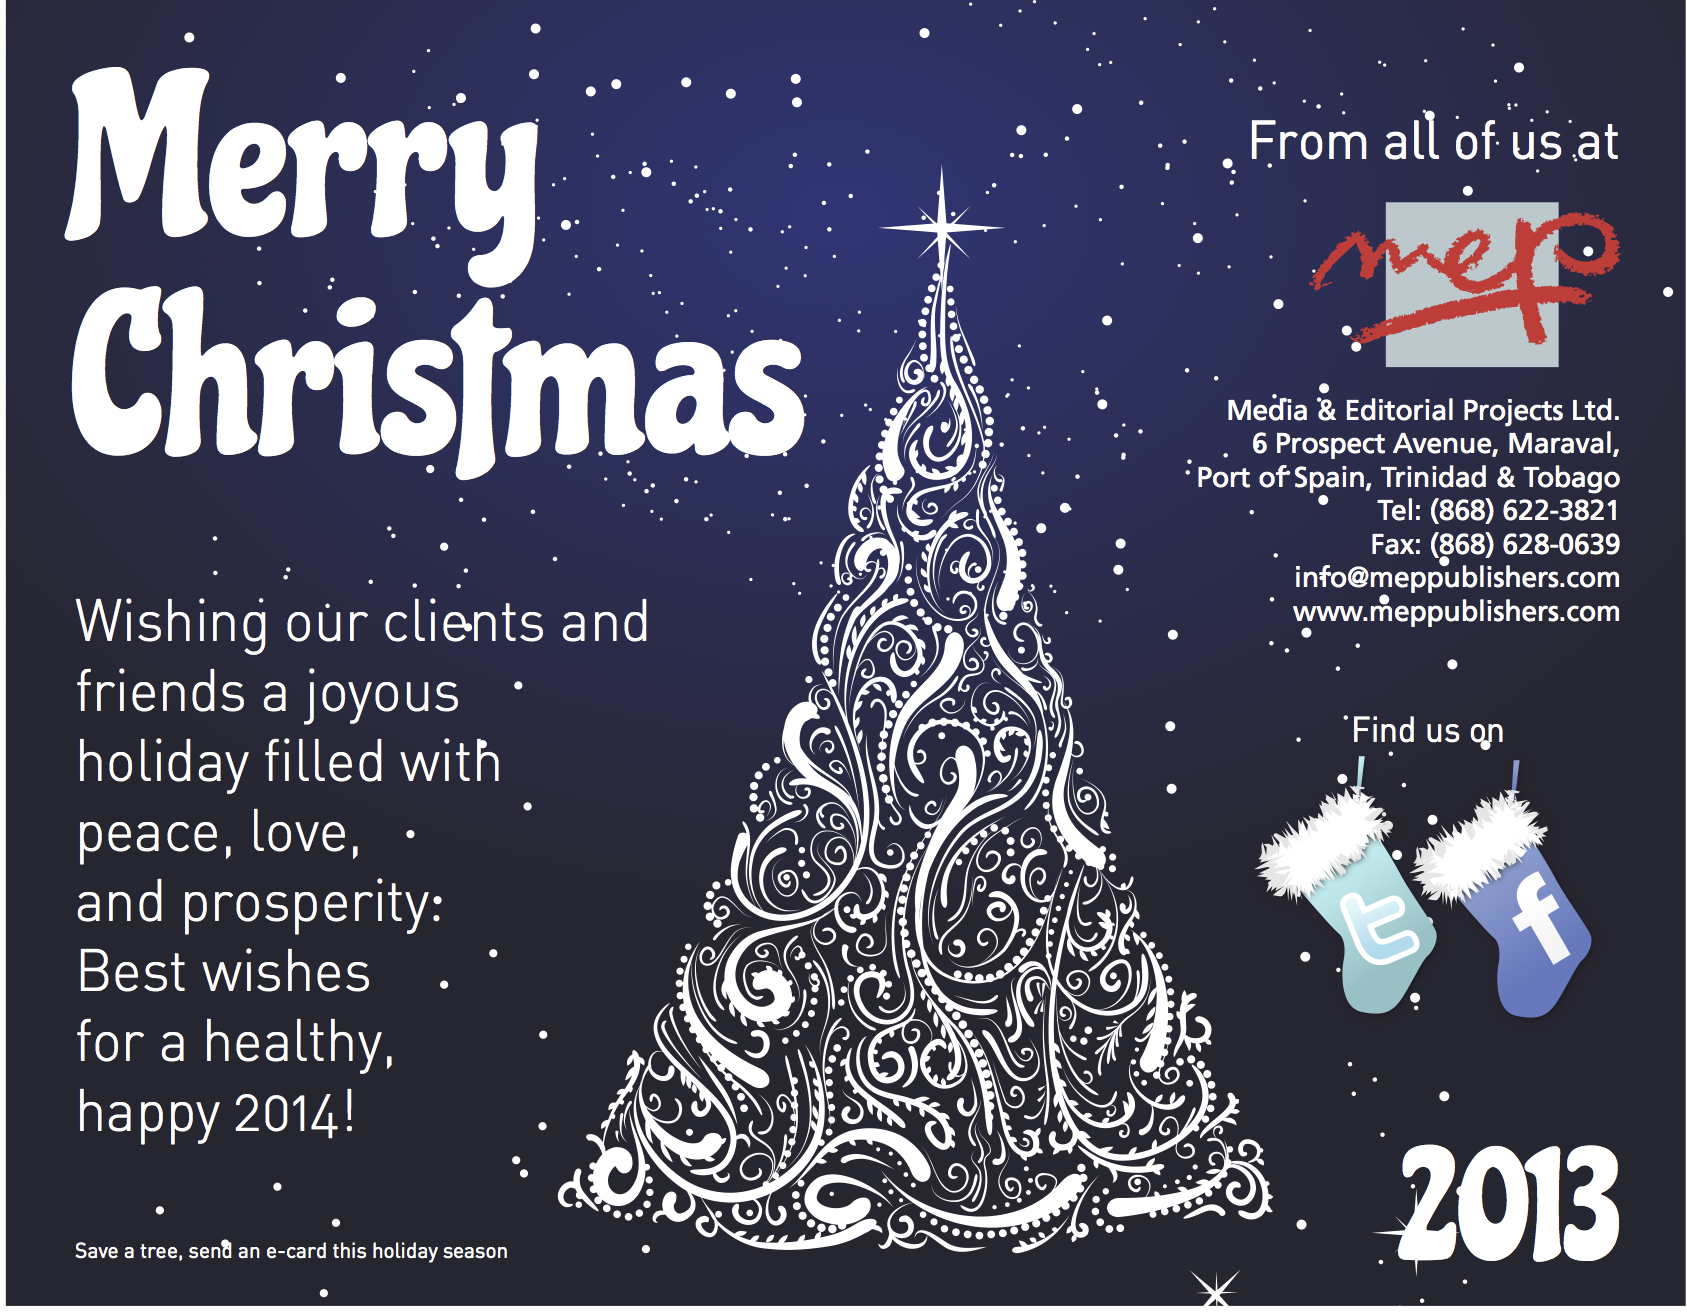 Seasons Greetings Happy 2014 From All Of Us Mep Publishers